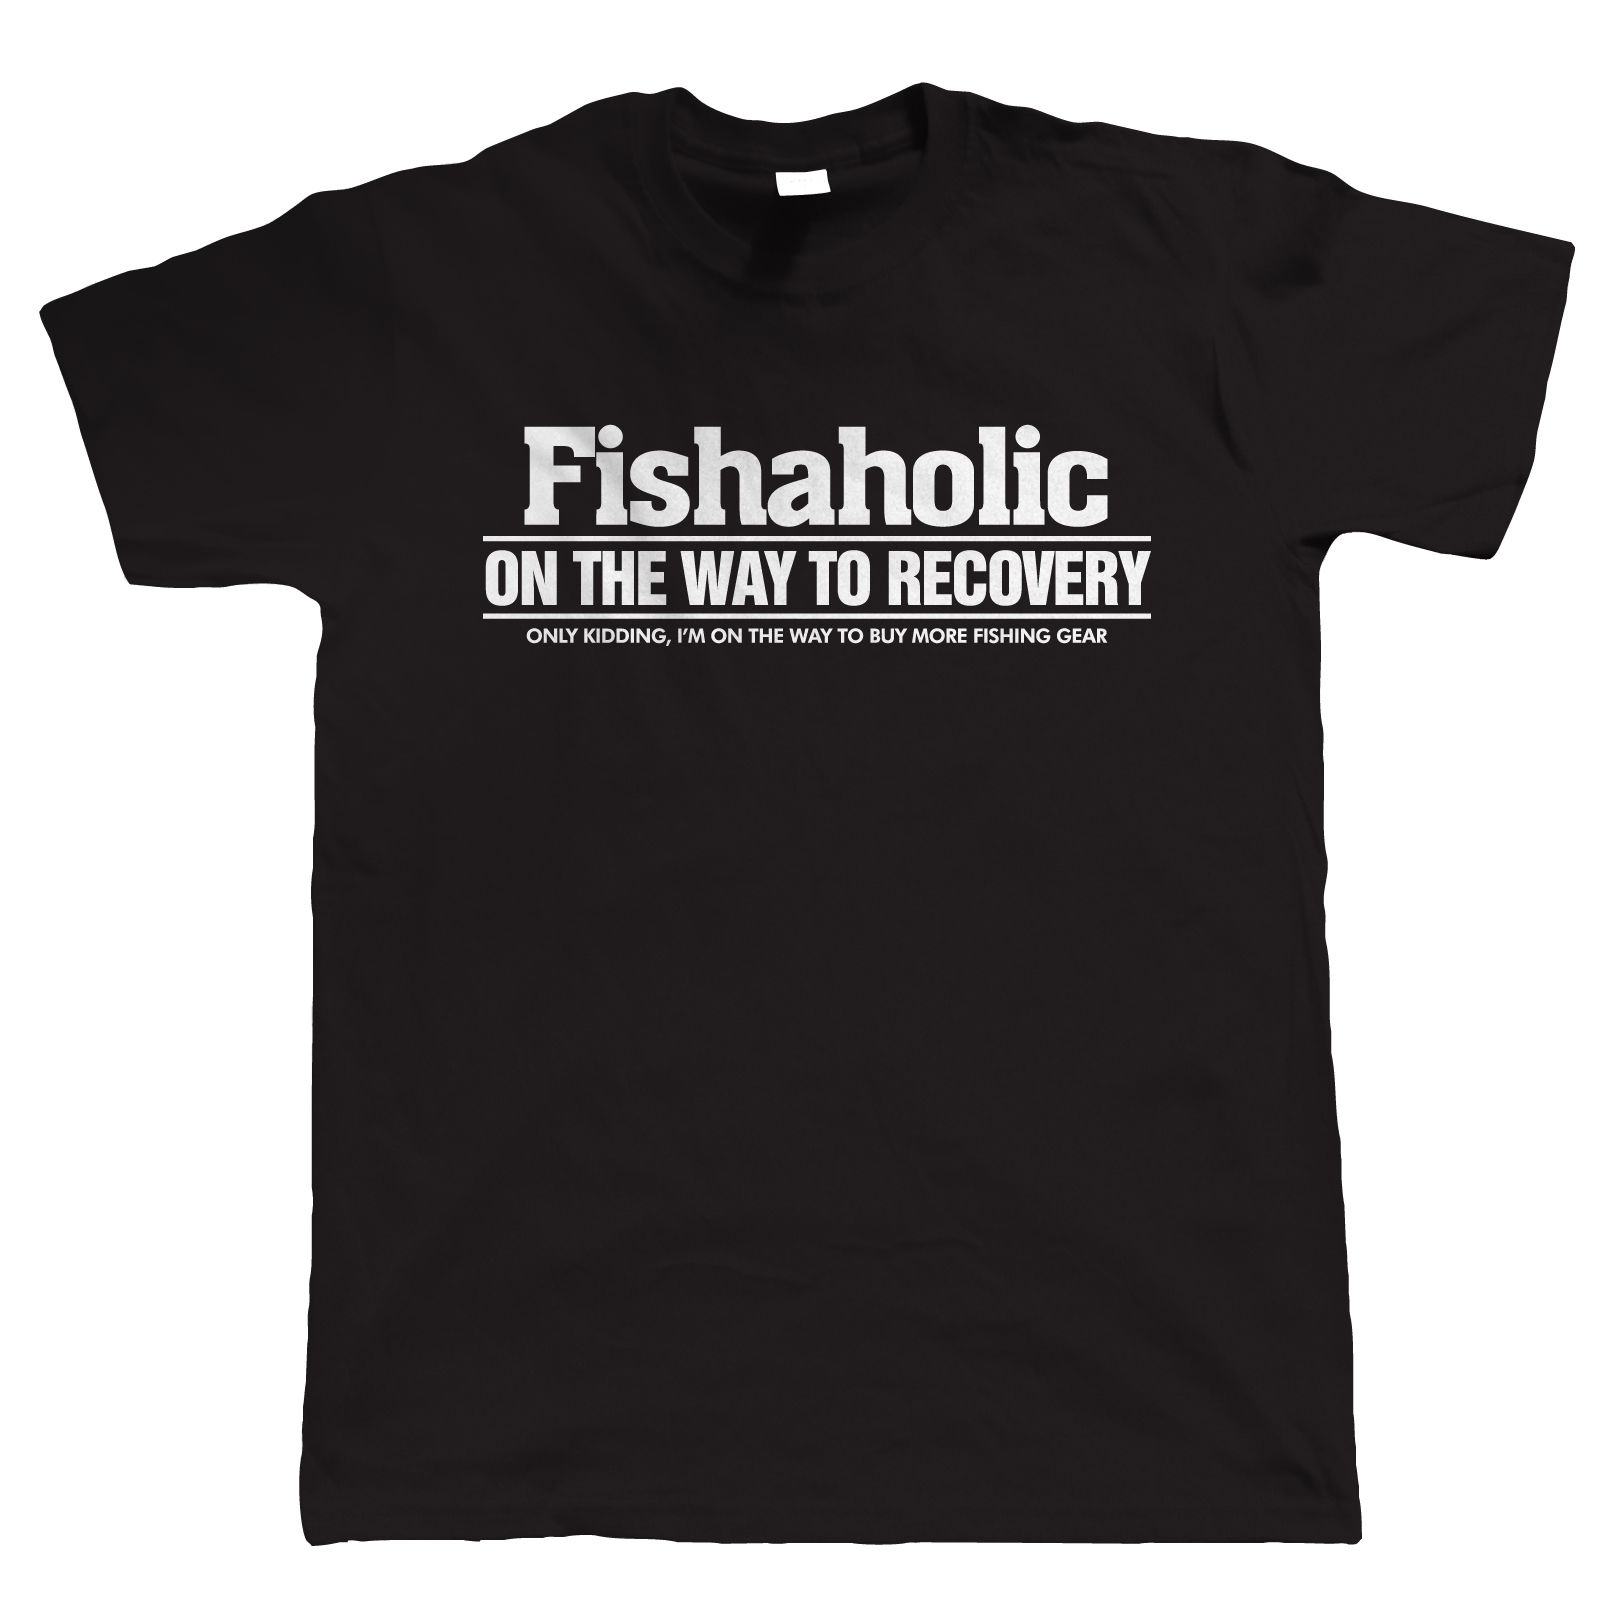 Best Funny T Shirts Personalised Office Fisheraholic Fishinger T Dad Fathers Day MenS Short Comfort Soft Shirt